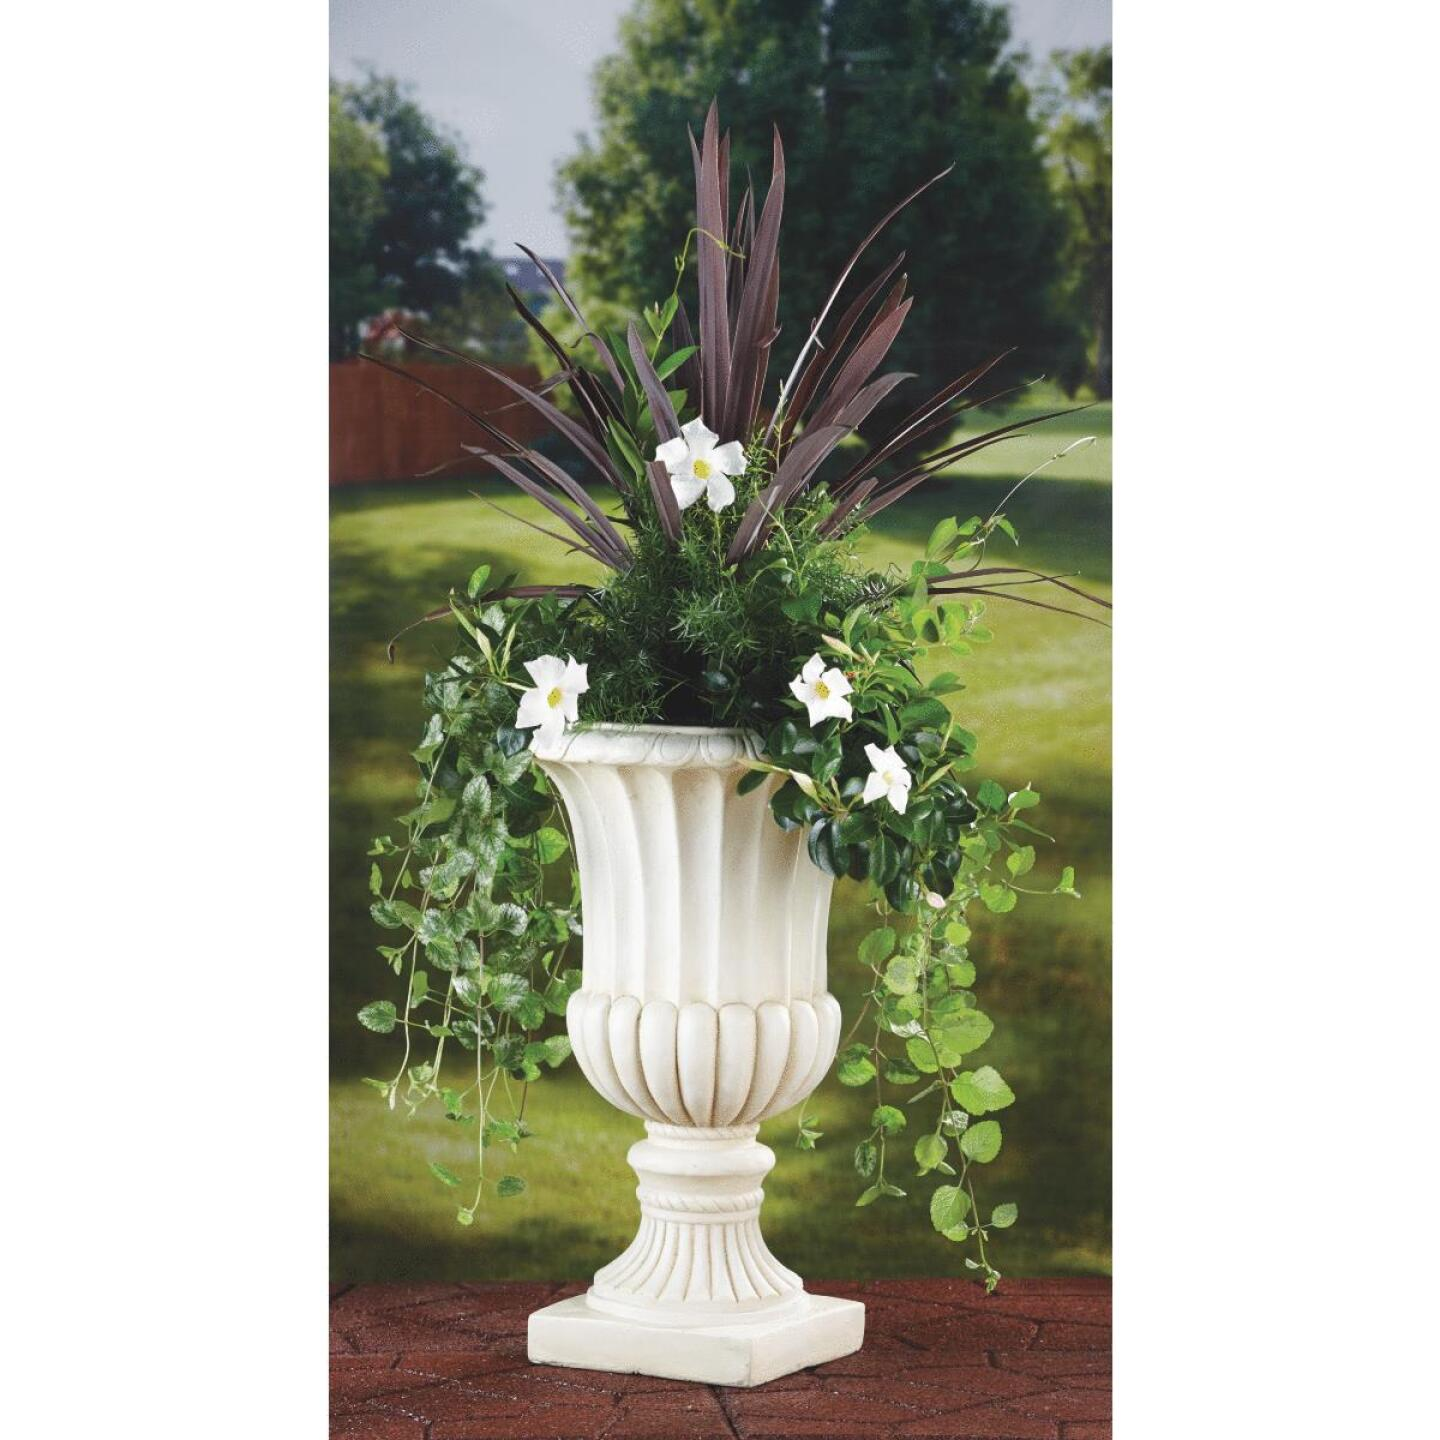 Best Garden 24 In. H. x 15 In. Dia. Cast Resin & Fiberglass White Urn Image 2